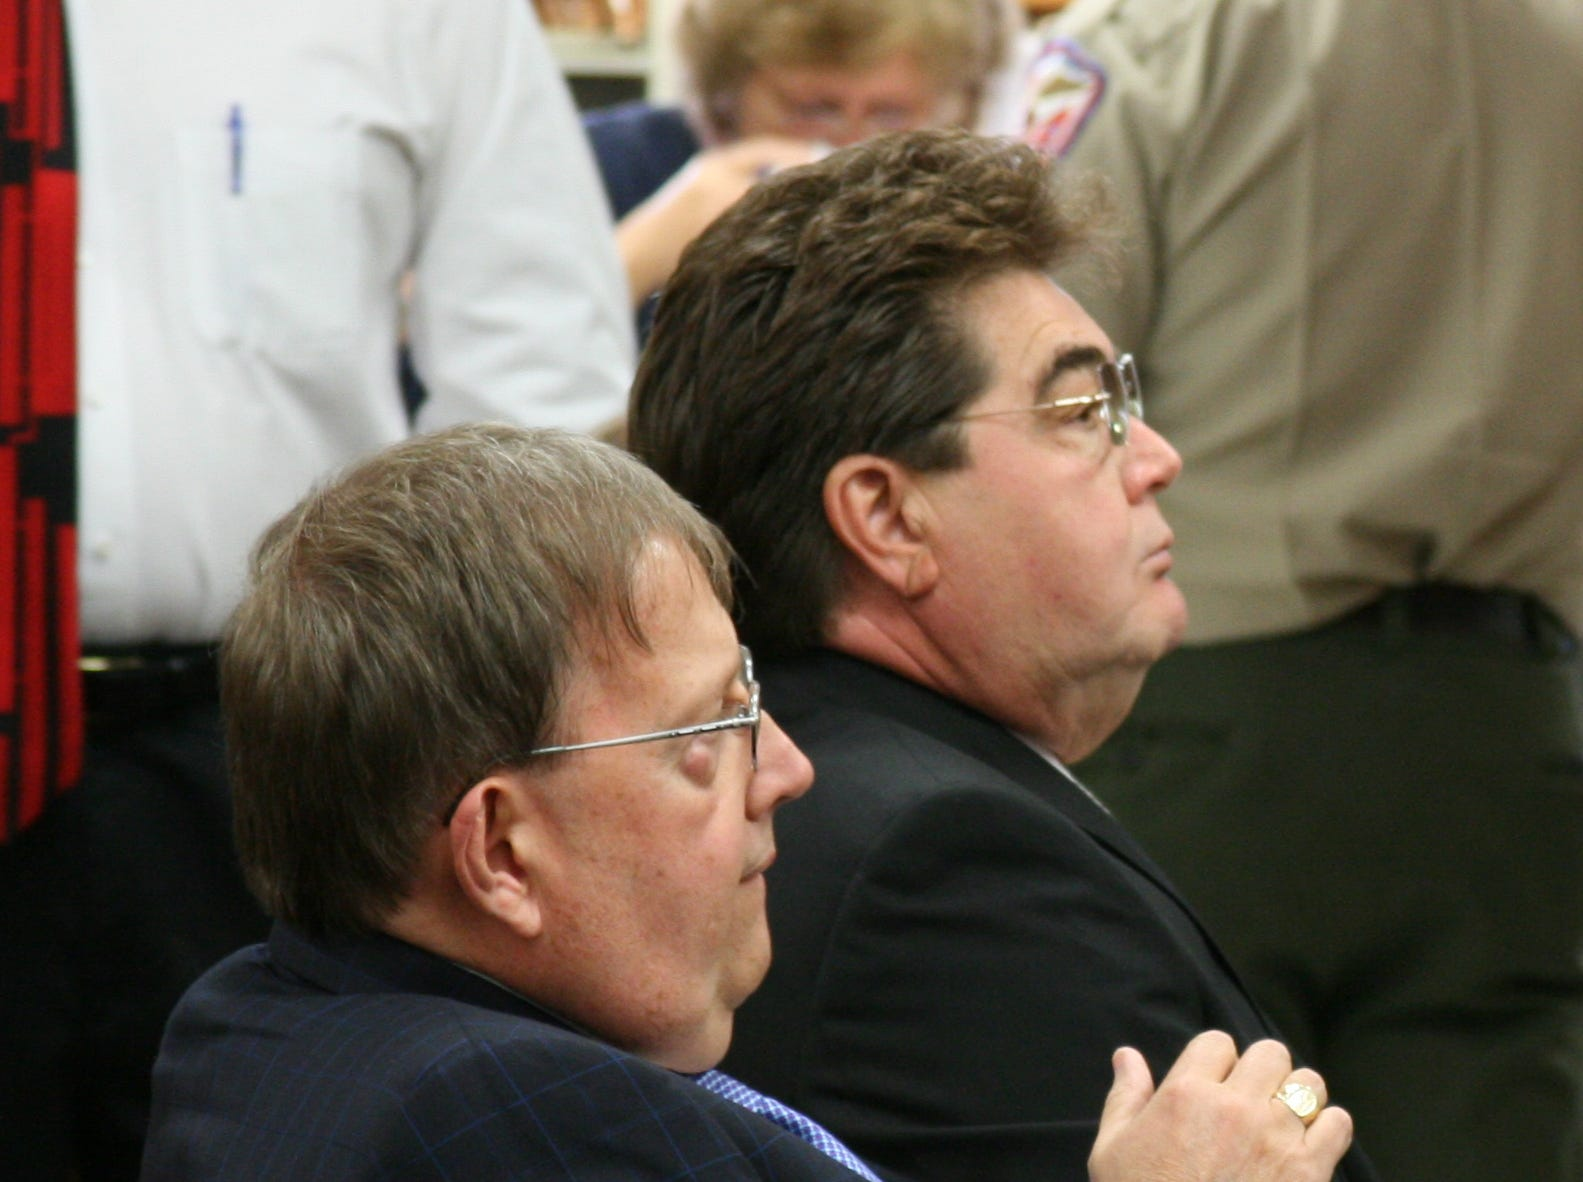 Claiborne County Sheriff David Ray, right, and his attorney, John T. Milburn Rogers, listen to proceedings in Hancock County Criminal Court on Wednesday in Sneedville, Tenn.  Ray was placed on a two-year pre-trial diversion program and ordered to perform 250 hours of community service in connection with sexual assault, statutory rape and statutory rape by an authority figure charges. Ray is accused of raping a girl on a deer-hunting trip in Hancock County in 2006, when she was 17, and on an earlier occasion in 2005, when she was 15.